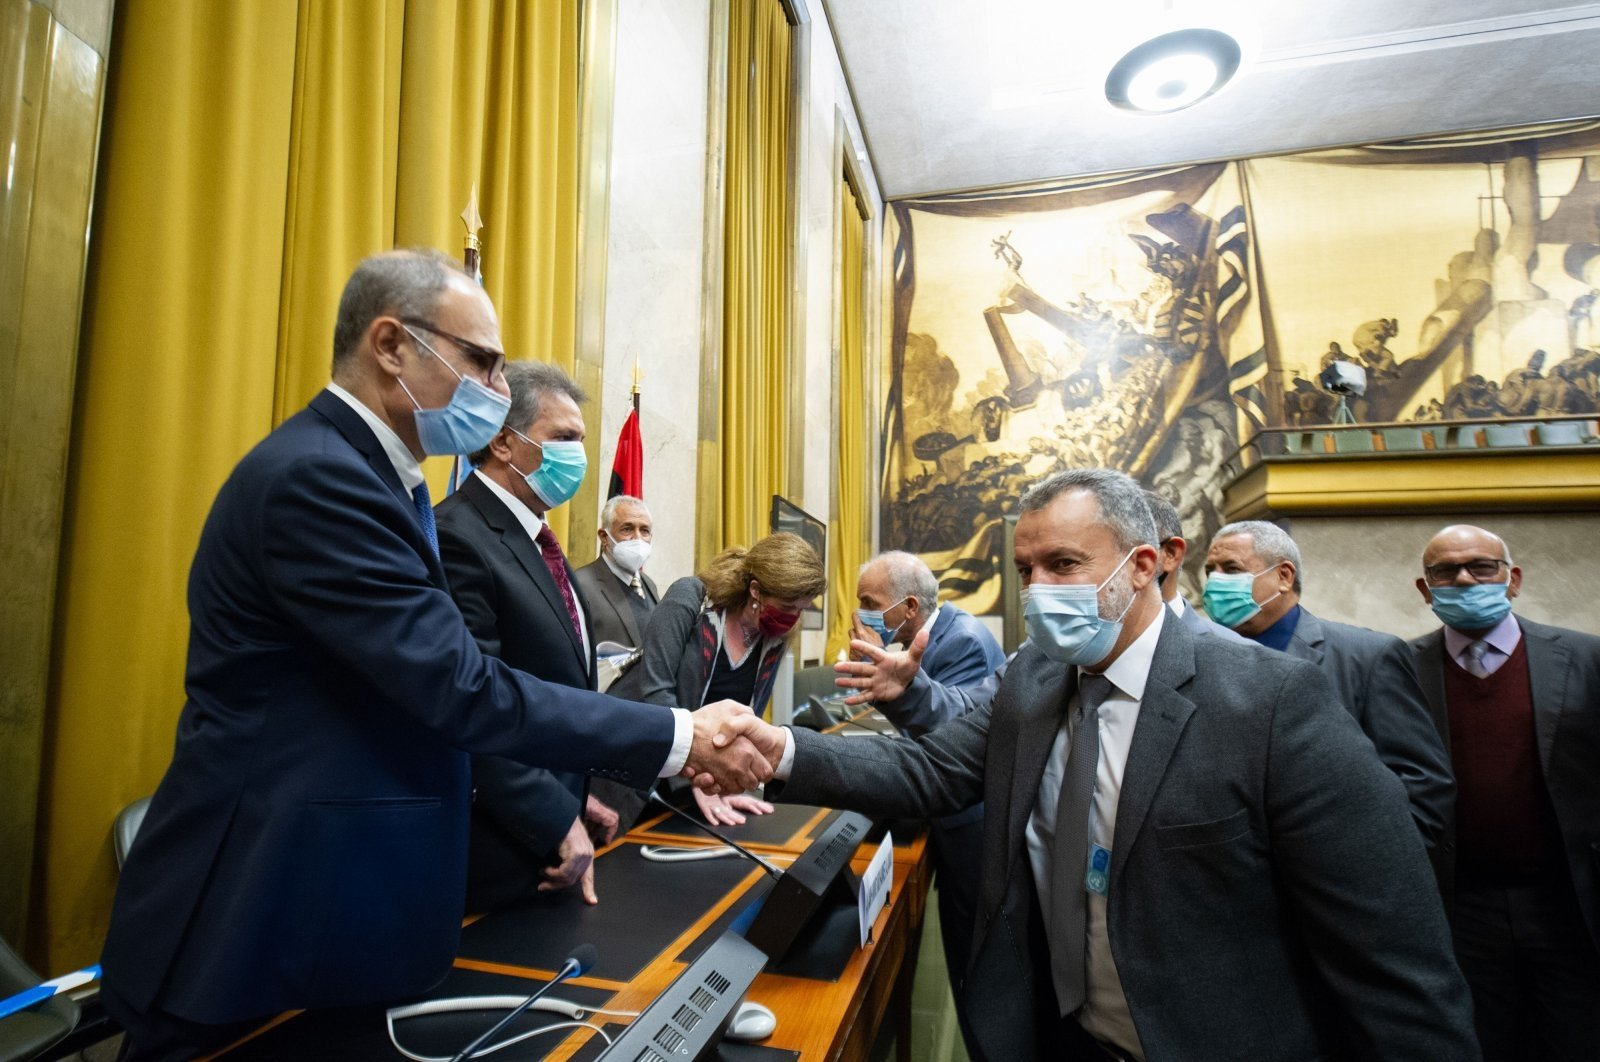 Representatives of Libya's two rival factions shake hands after a signing ceremony, on Oct. 23, 2020. (AFP Photo)